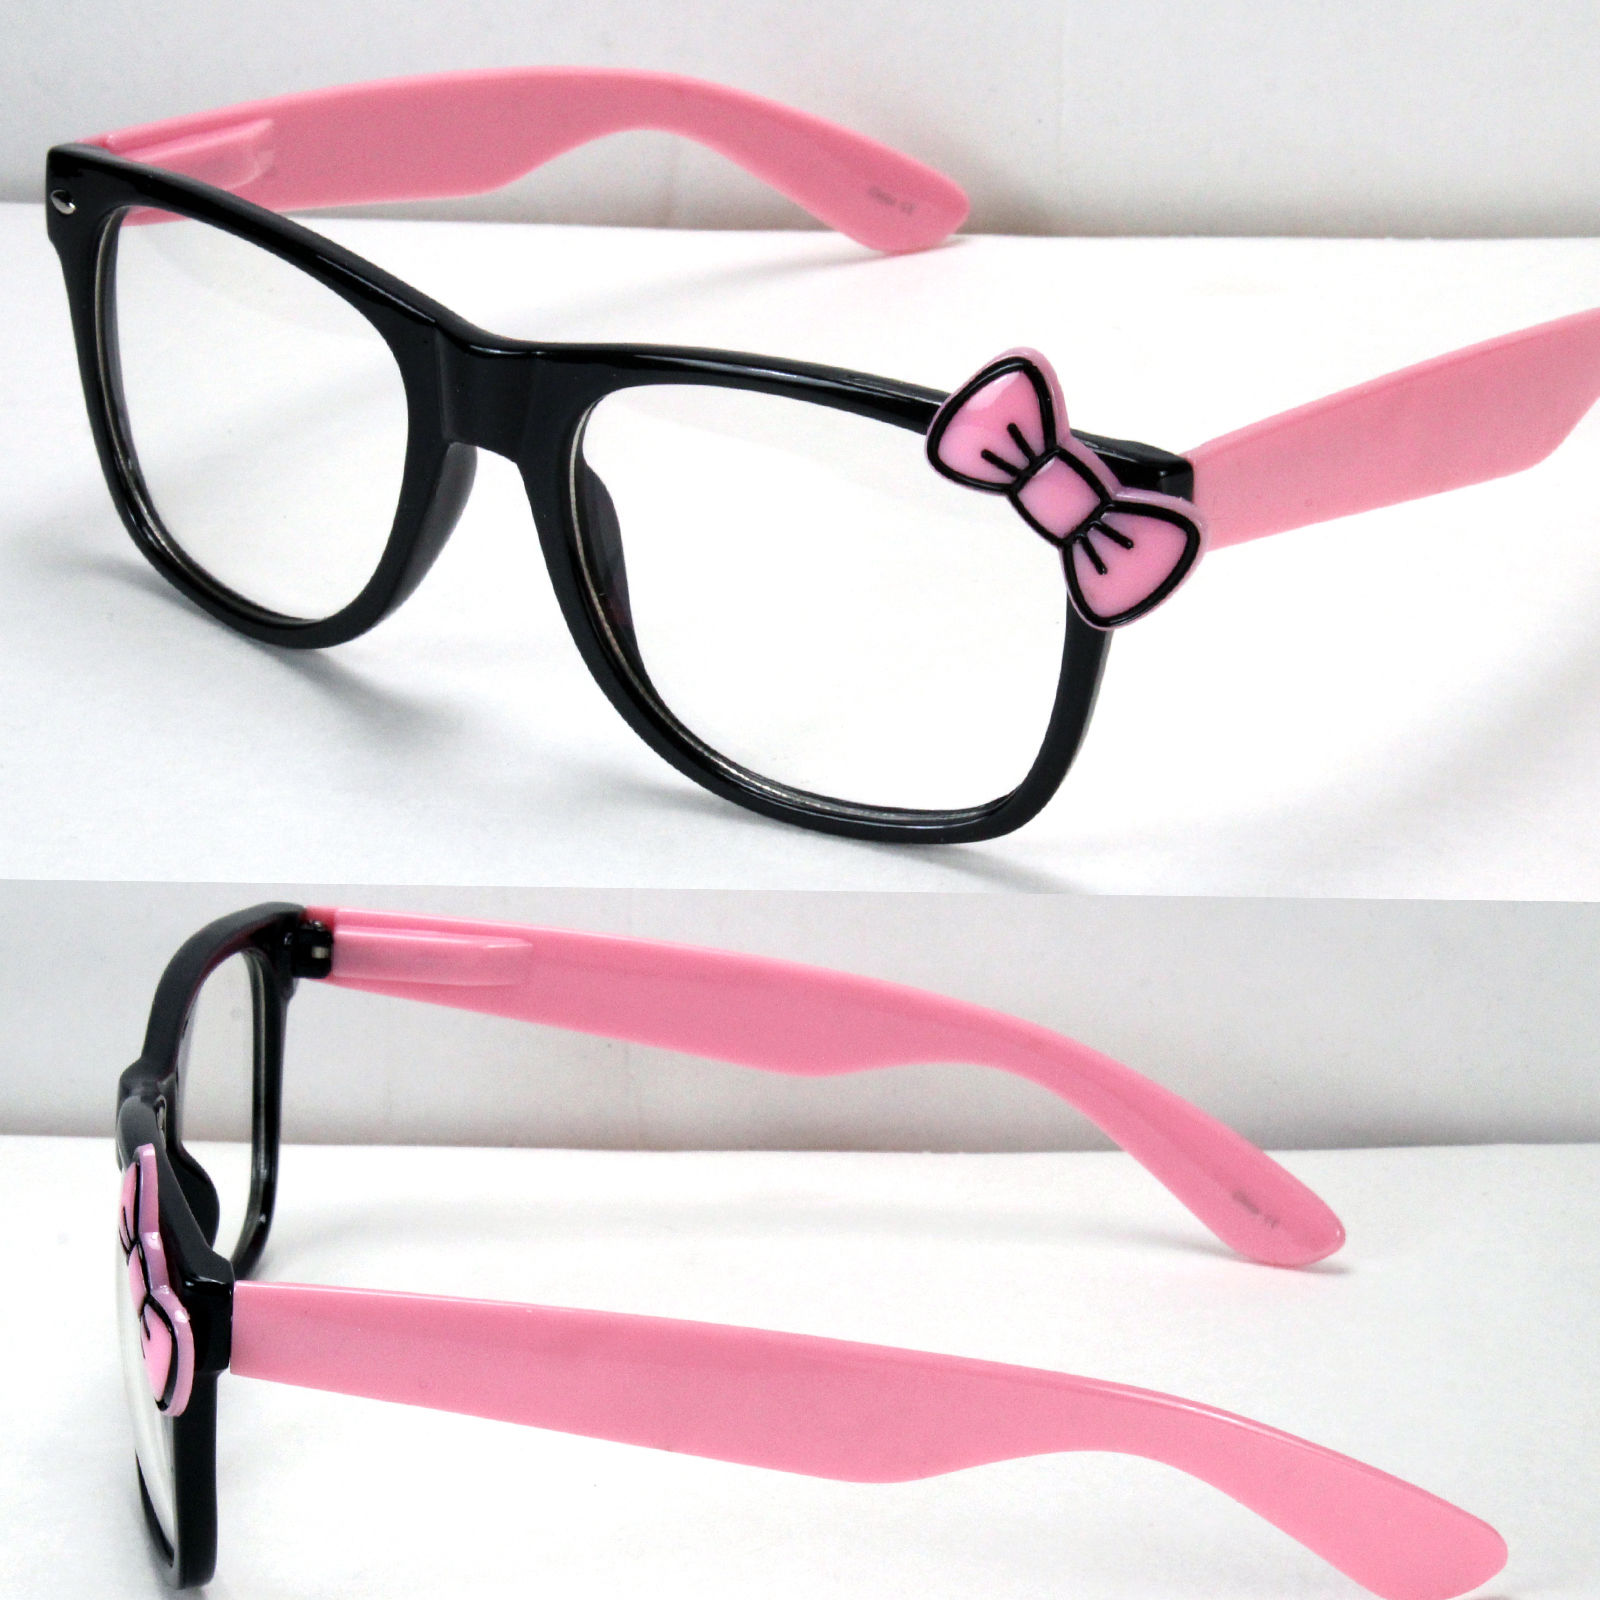 1b07a3deadb Women Clear Lens Frame Eye Glasses Bow Bowknot Hello Kitty Party Fashion  Kk475 - Buy Sunglasses